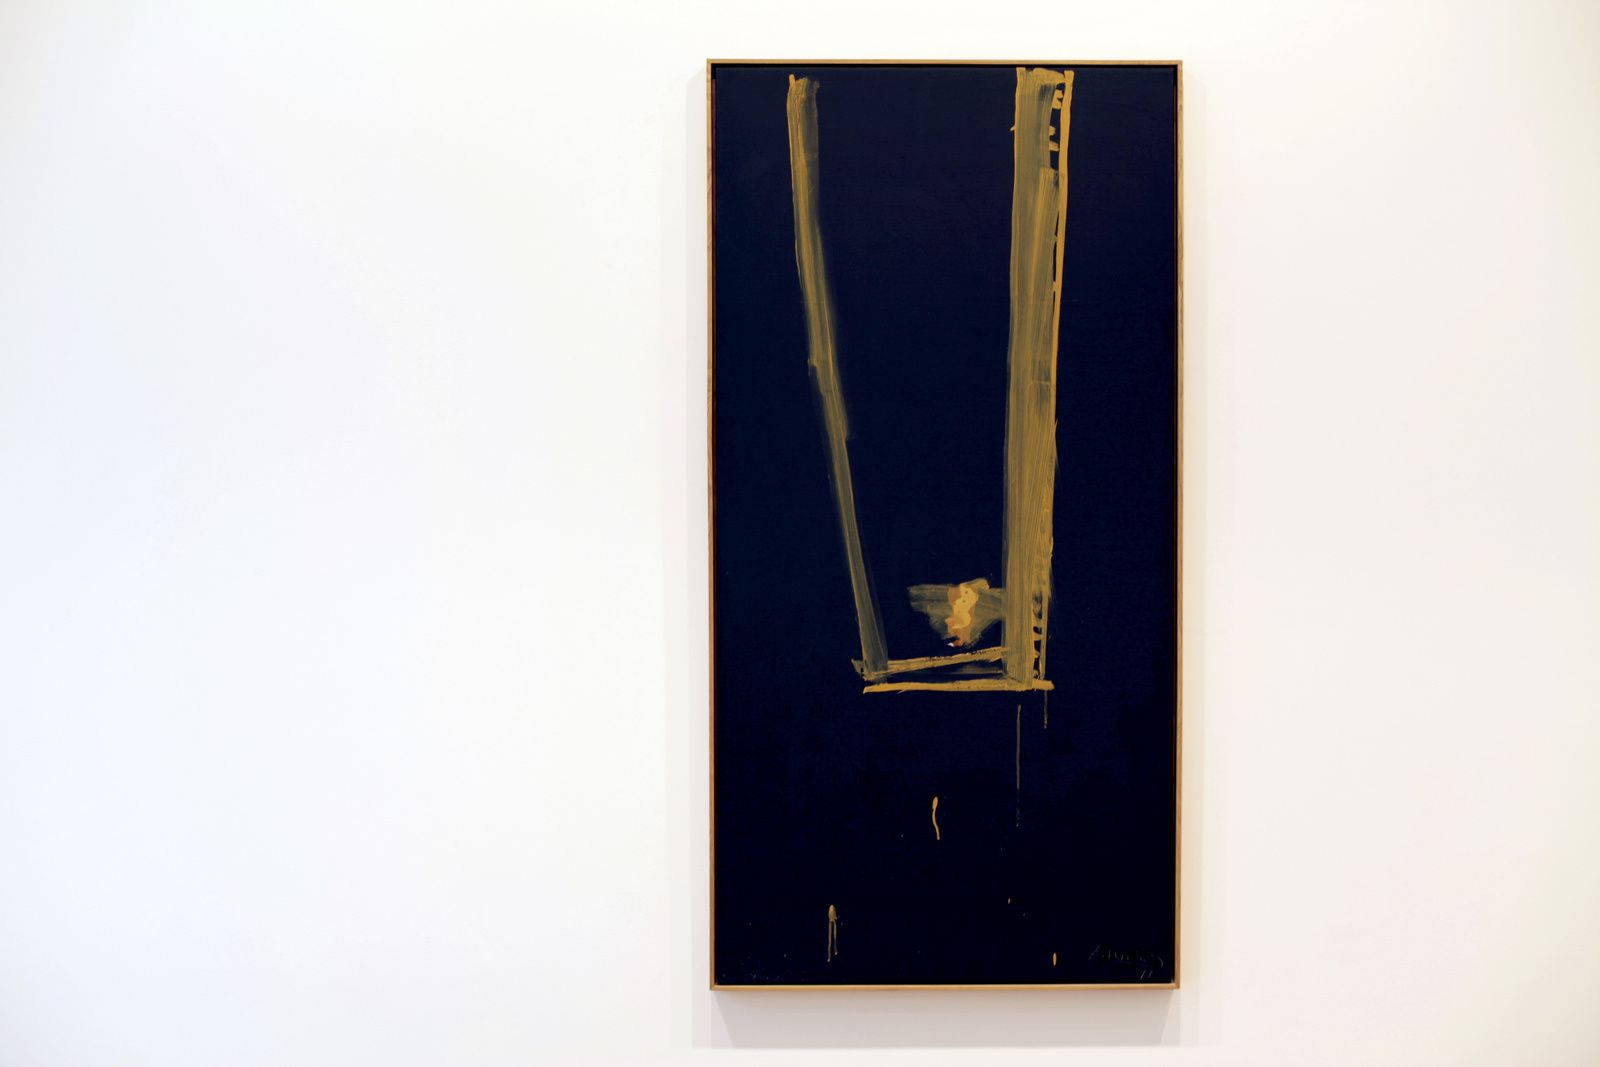 """Black open"", 1973 de Robert MOTHERWELL - Courtesy Galerie Templon © Photo Éric Simon"